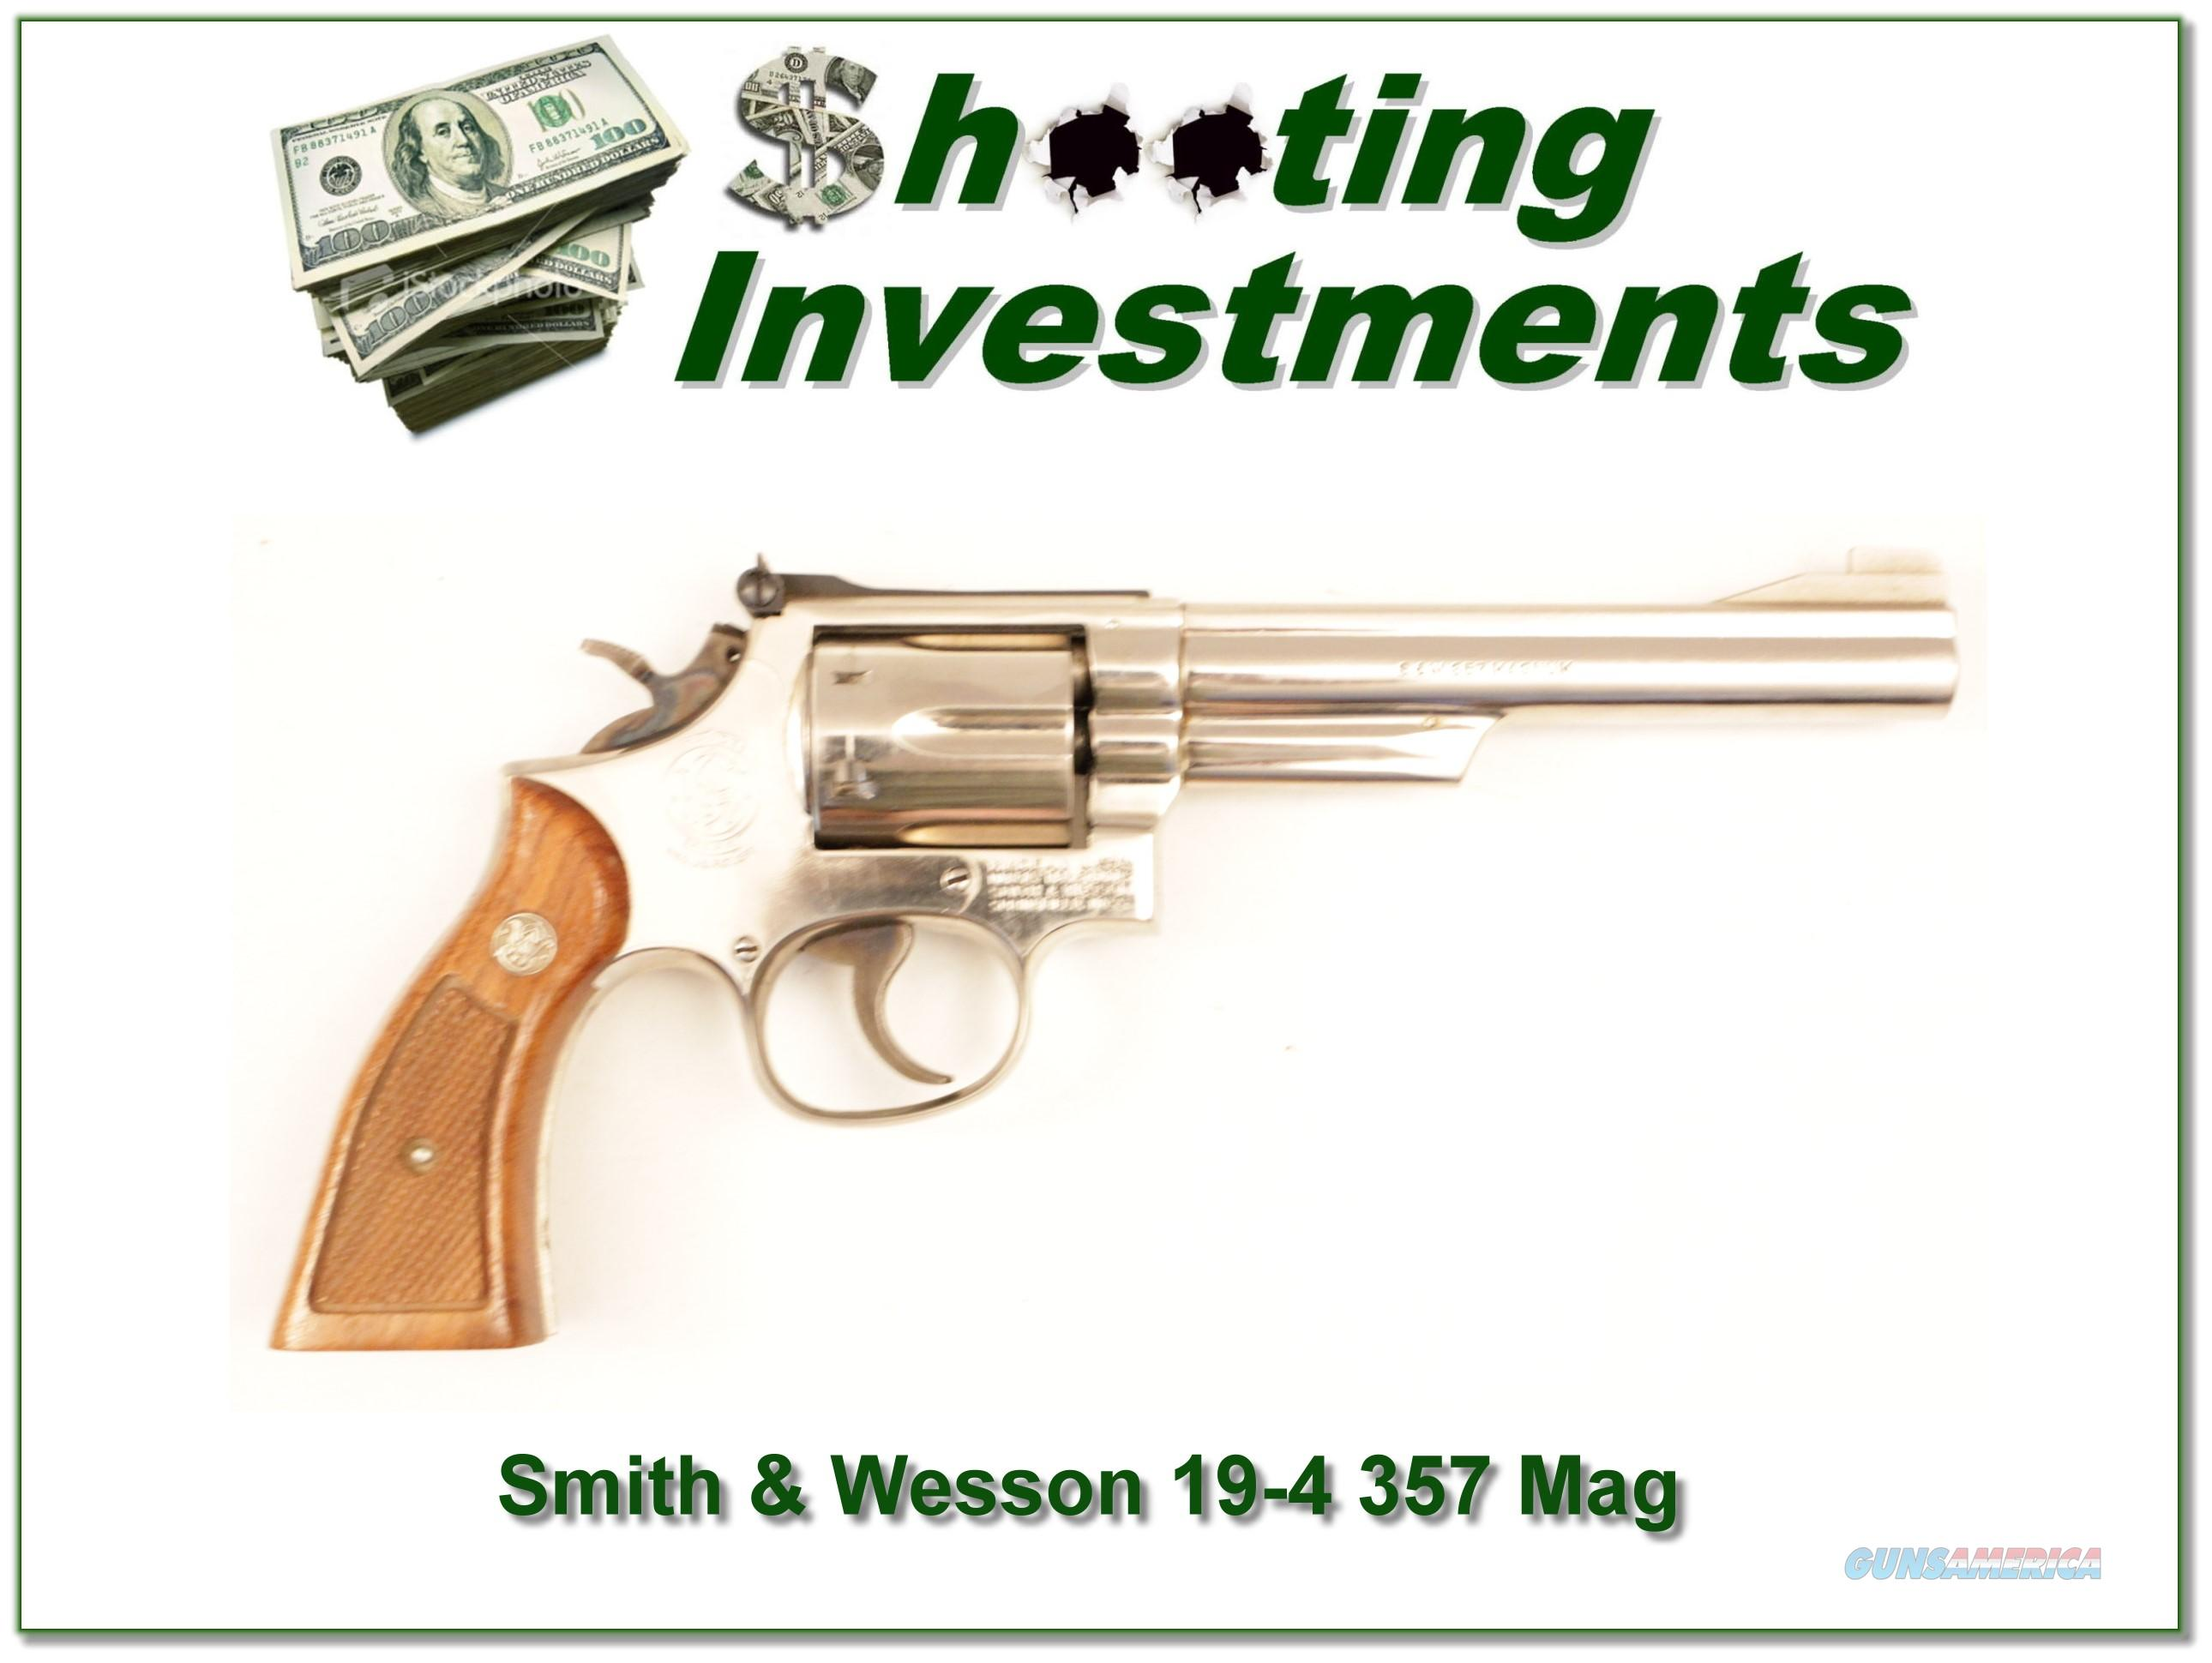 Smith & Wesson 19-4 357 Magnum Chrome 6 in  Guns > Pistols > Smith & Wesson Revolvers > Full Frame Revolver